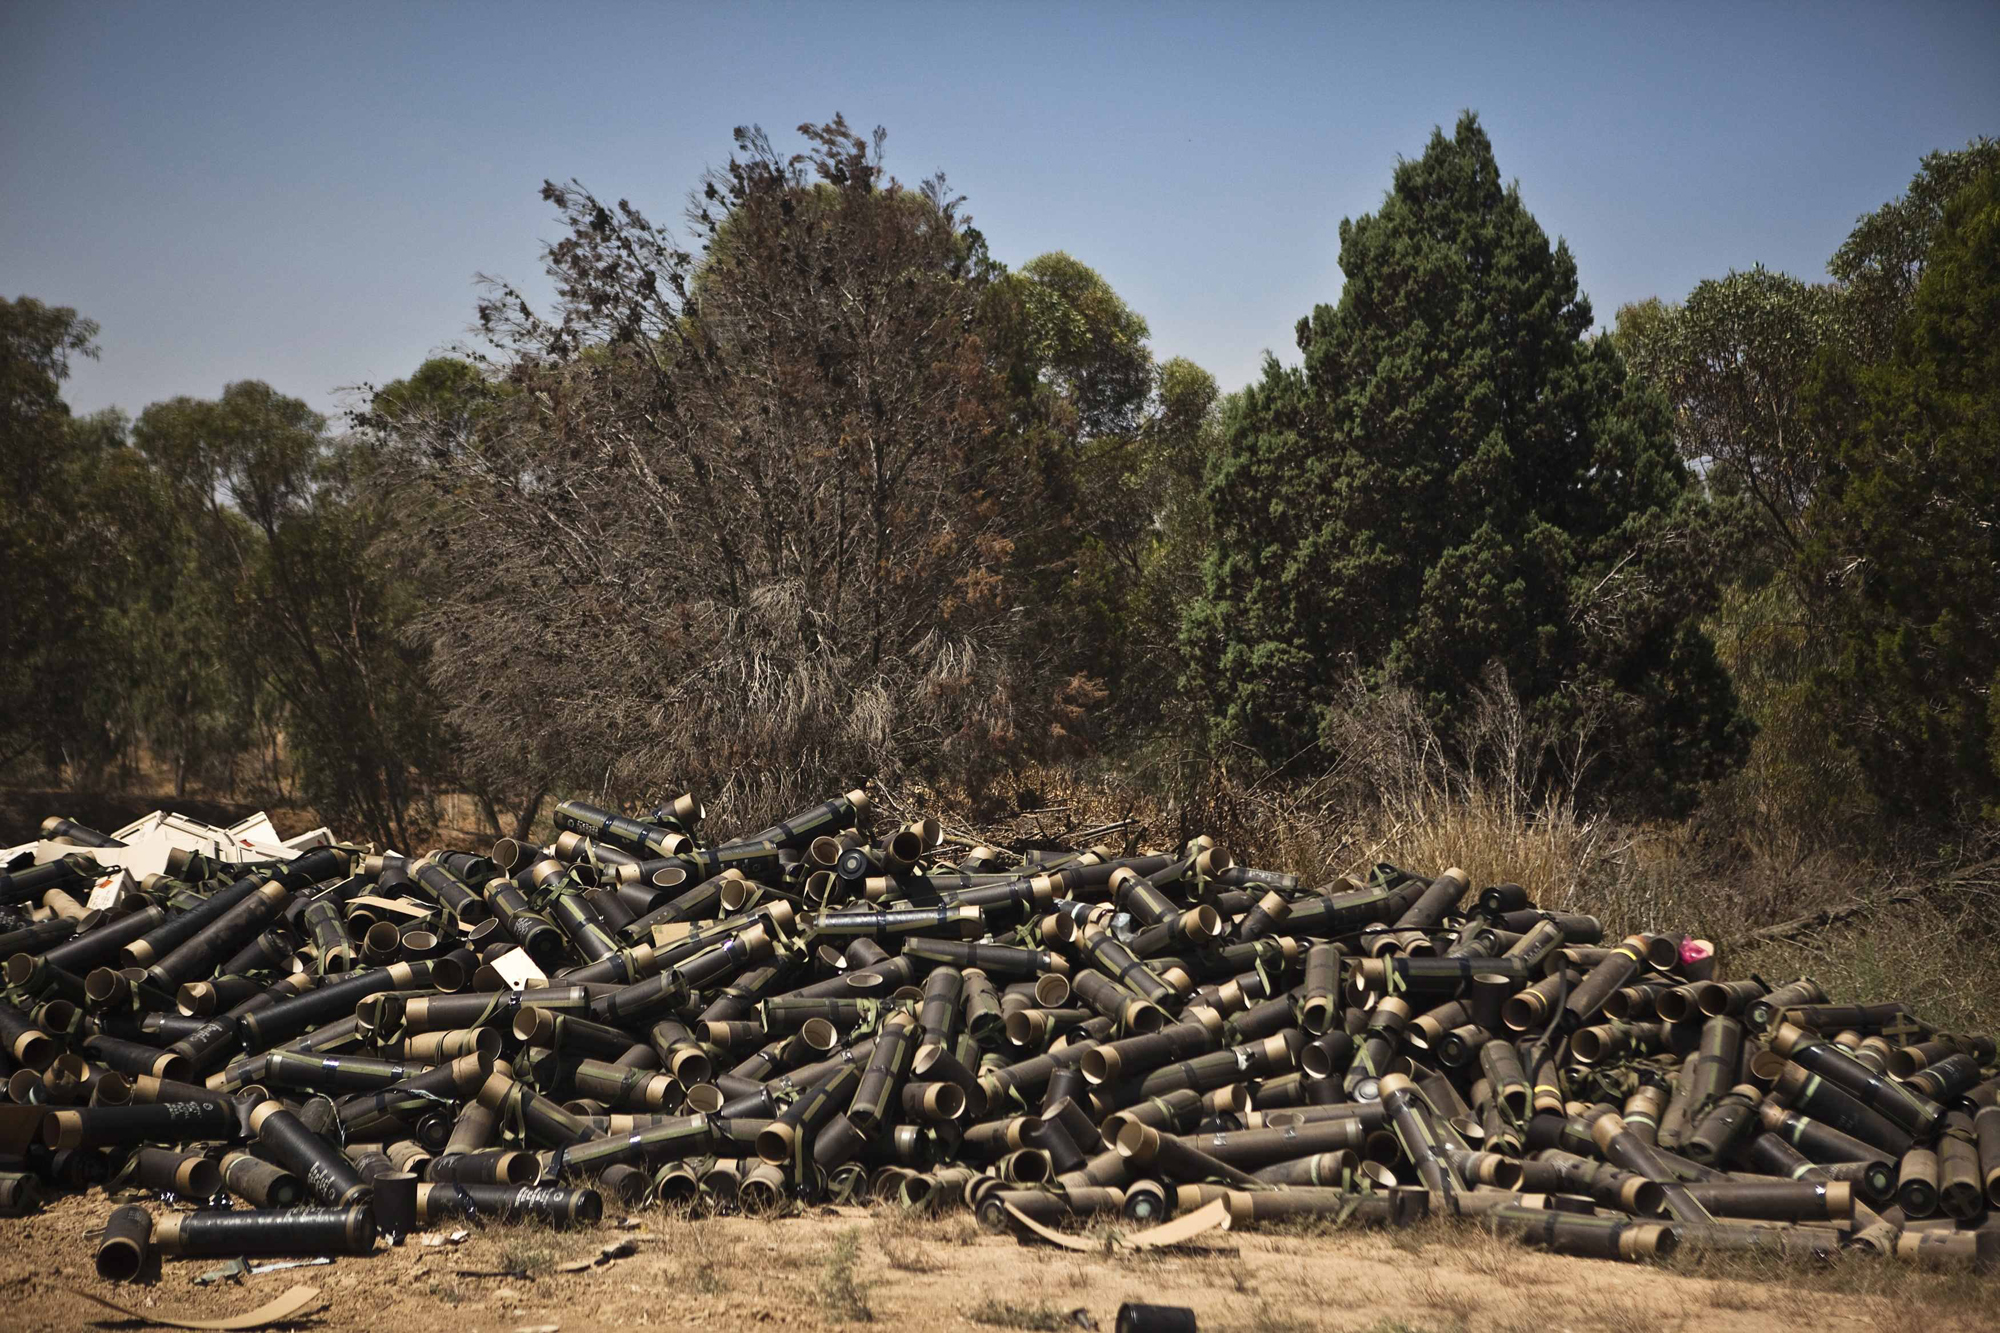 Mortar cases are piled at a military staging area near the border with the Gaza Strip, July 24, 2014.